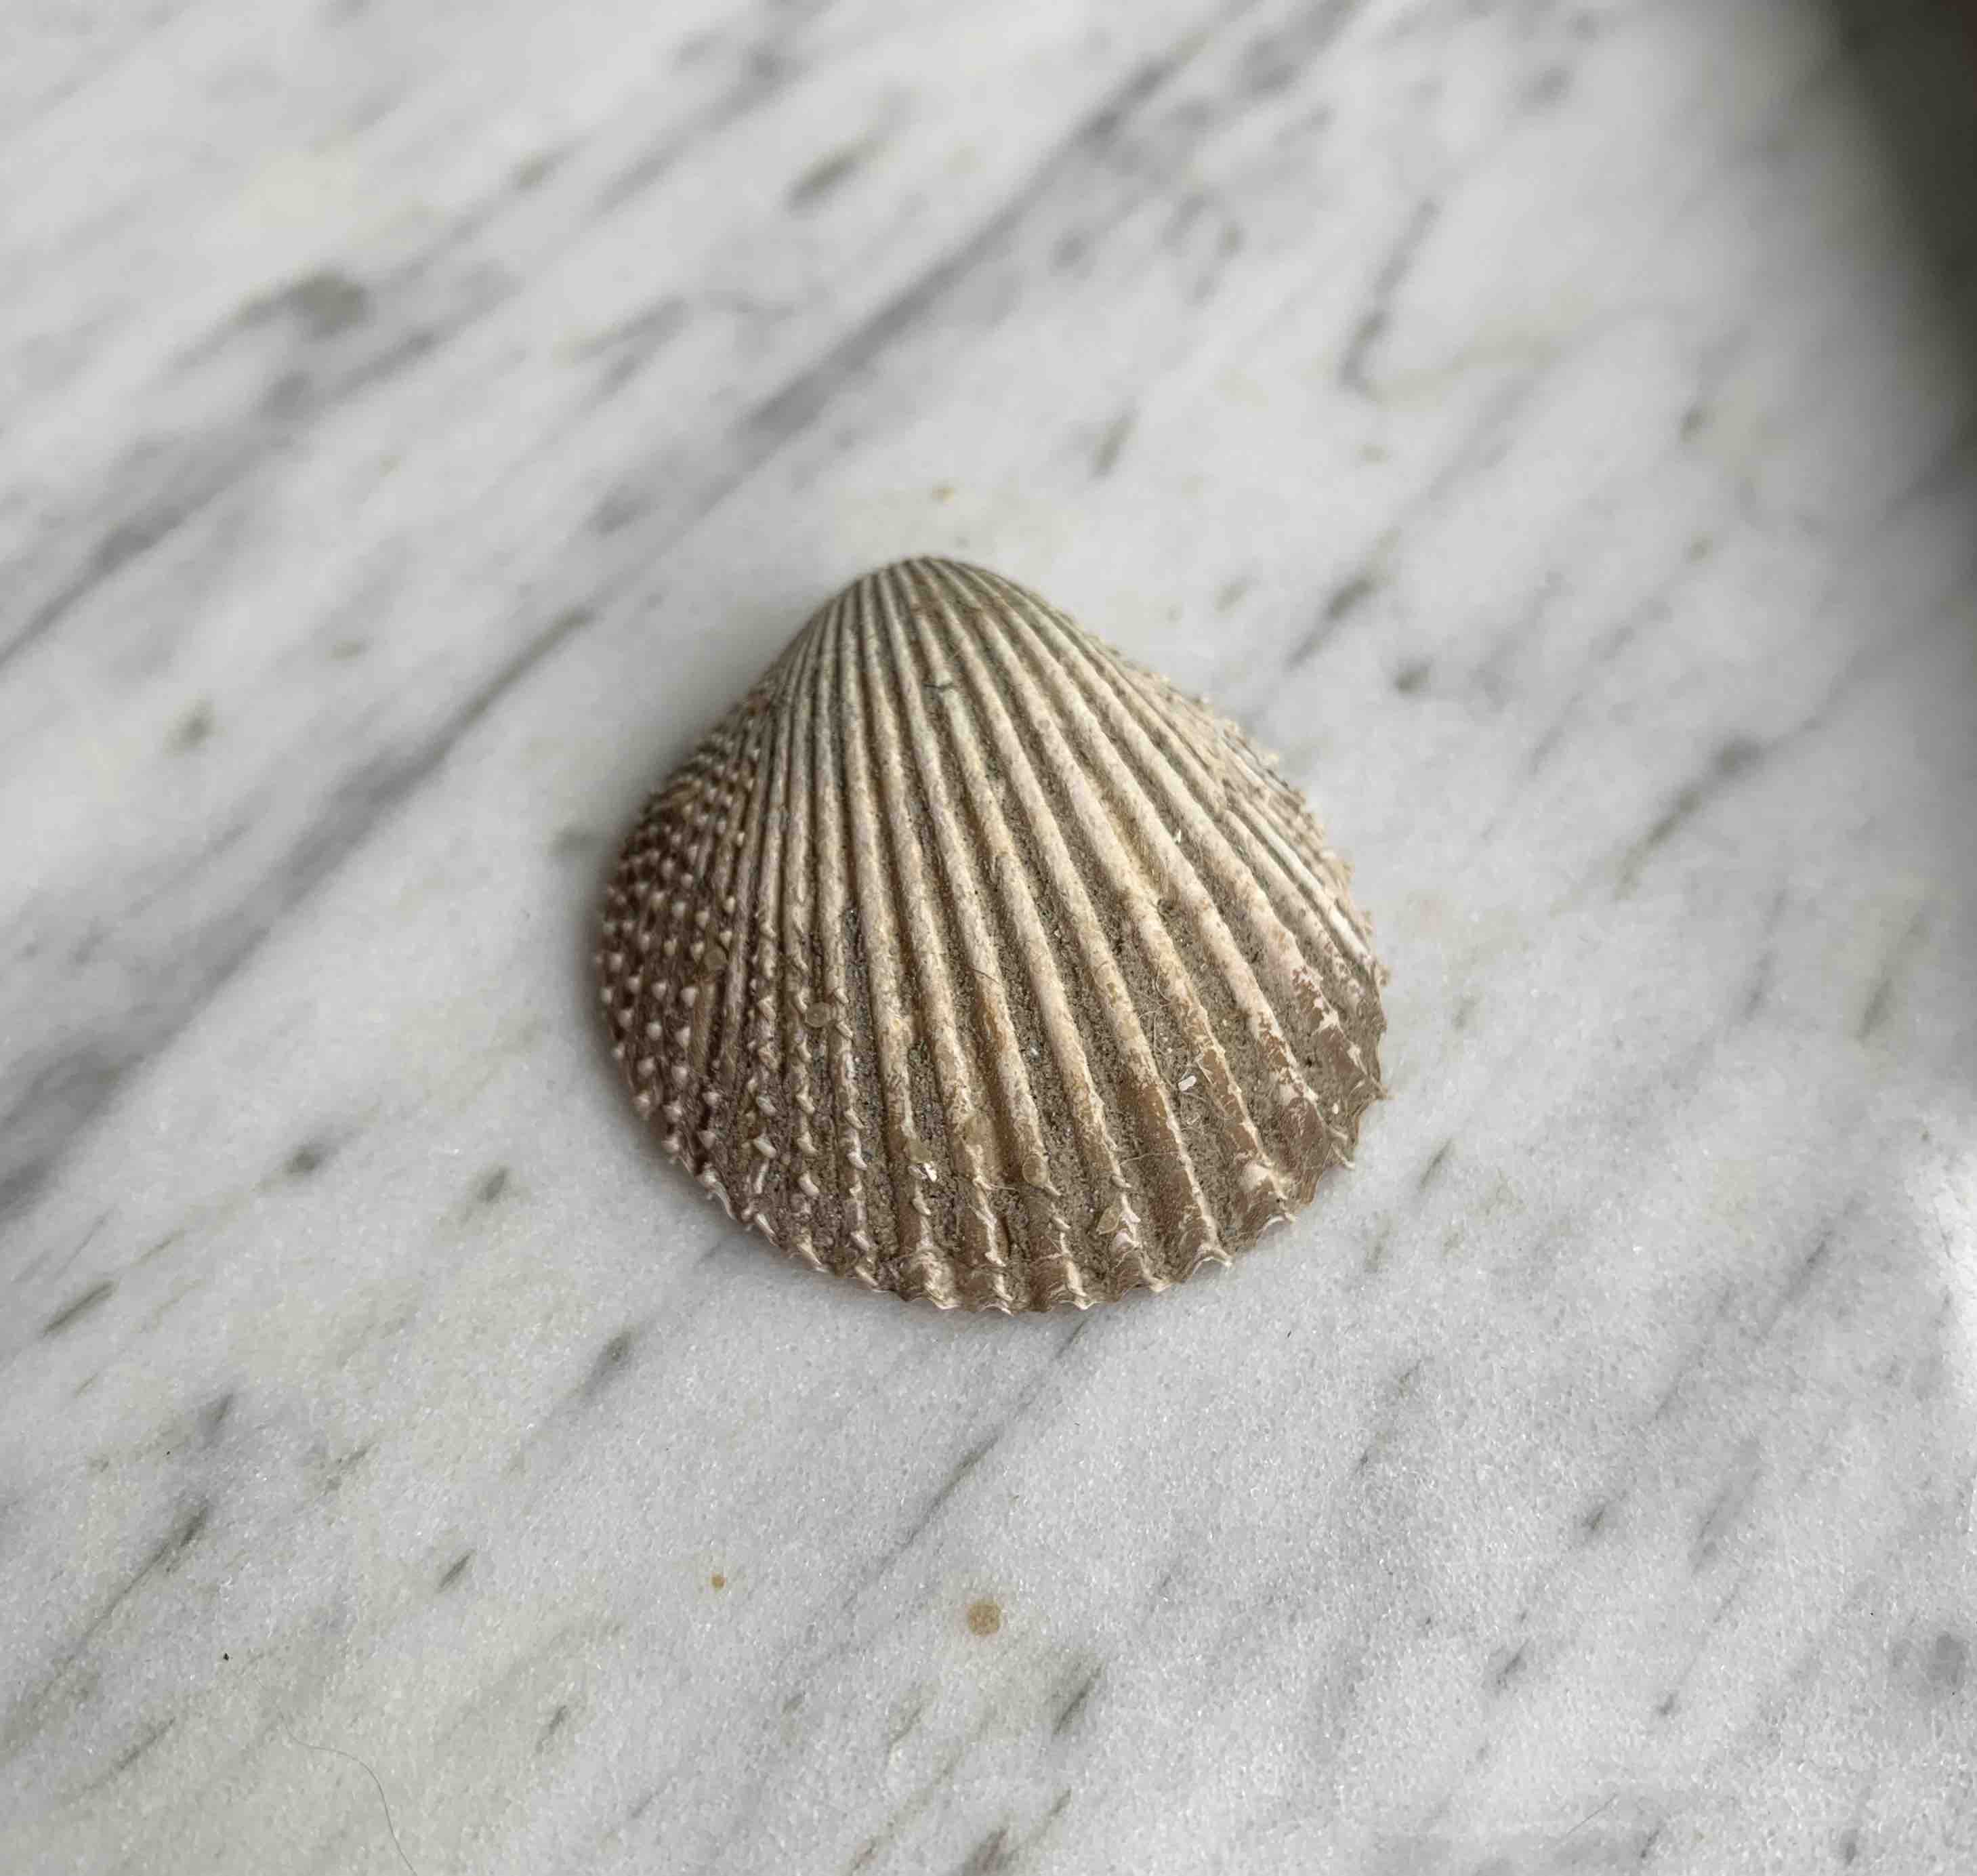 Dirty pricklycockle shell